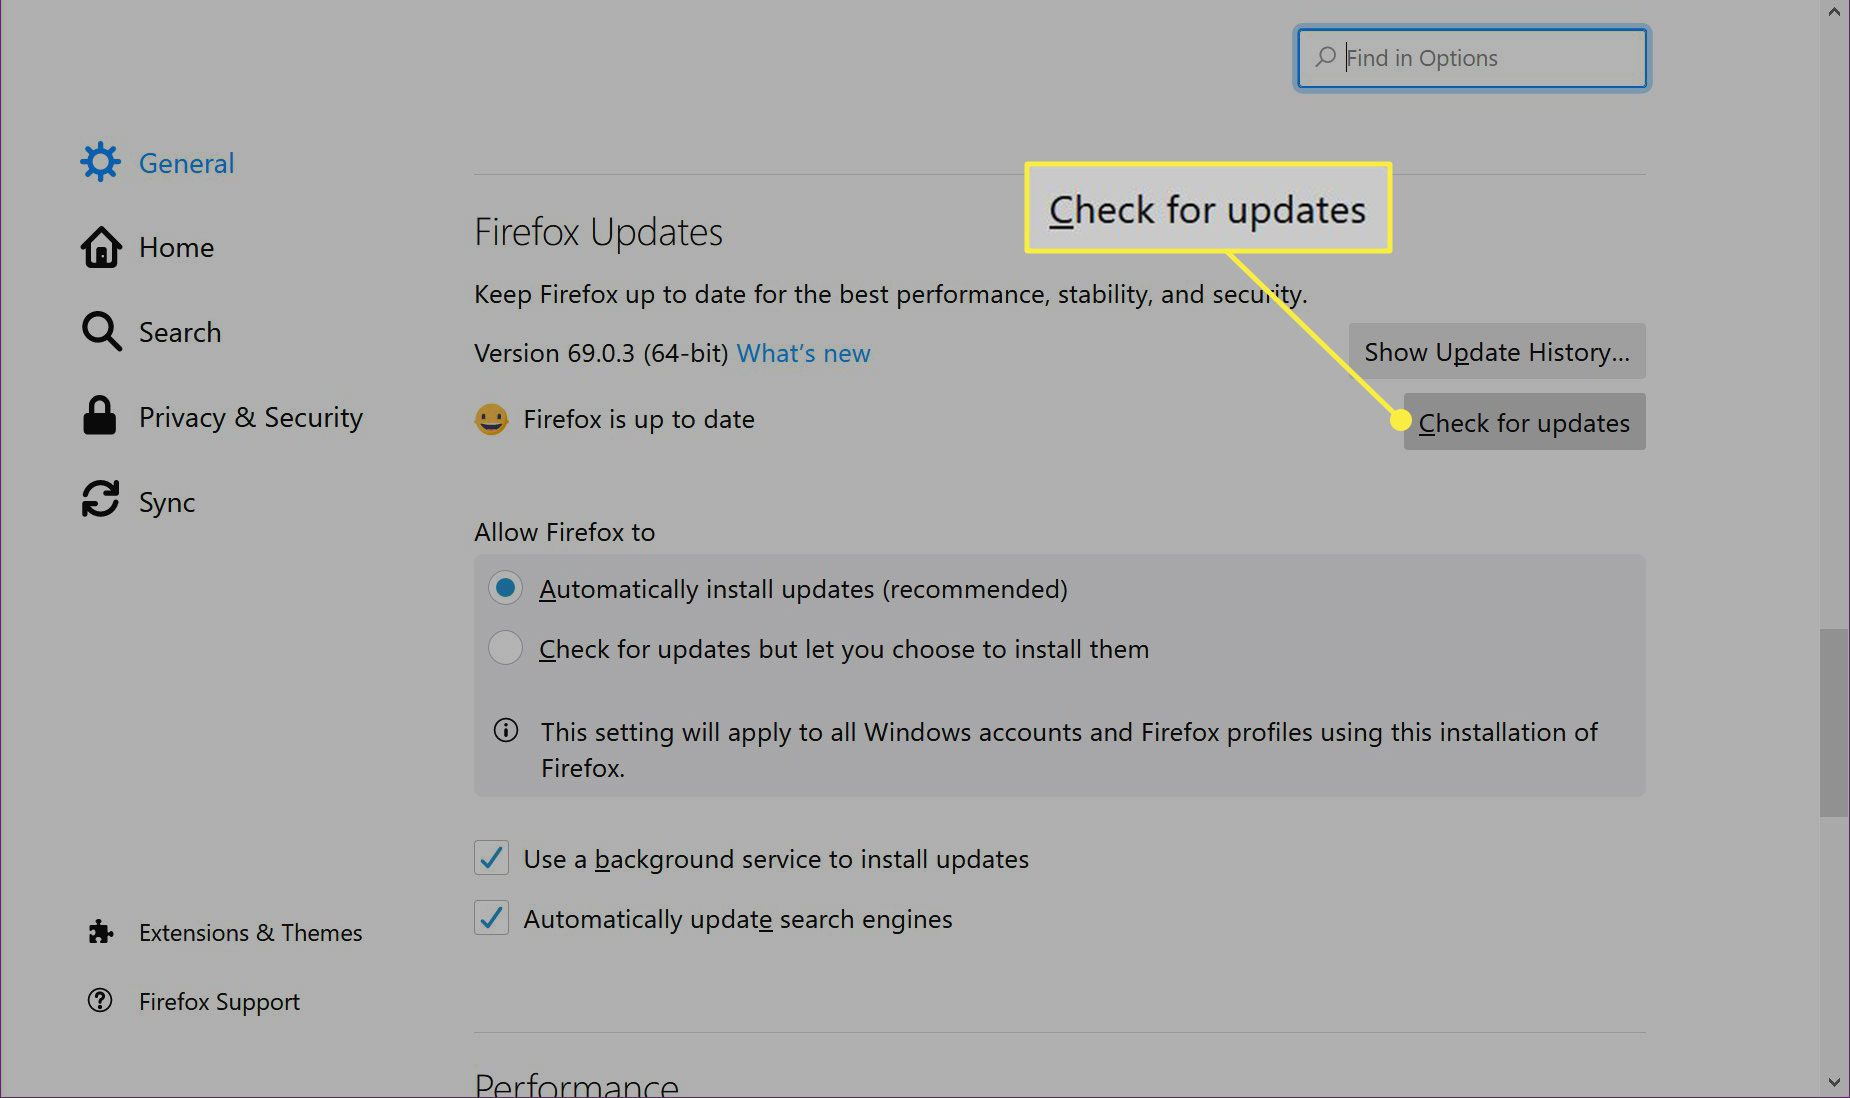 The Check for Updates button in Firefox